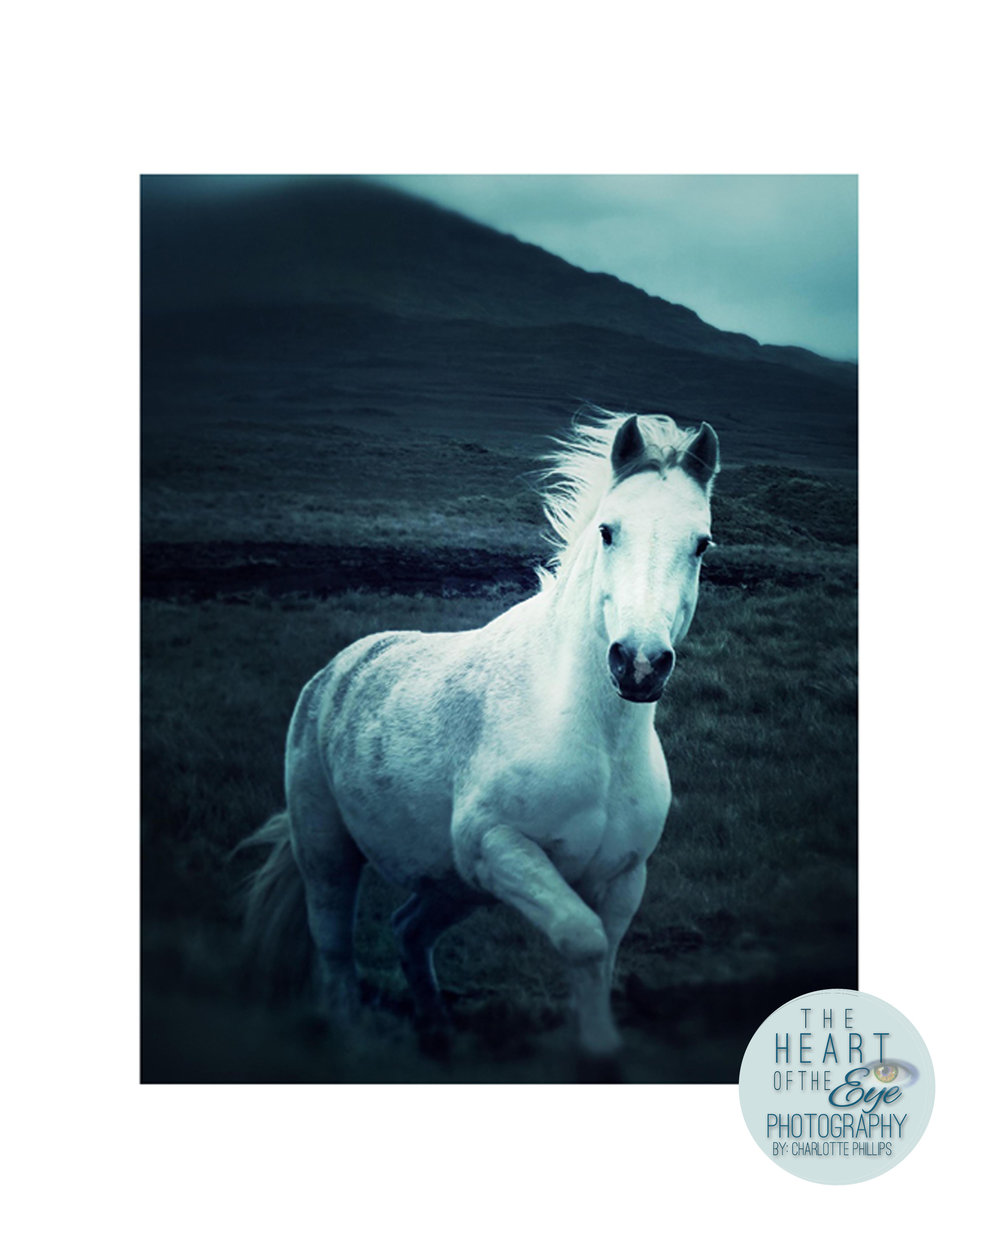 The Wild Horse of Connemara, Ireland